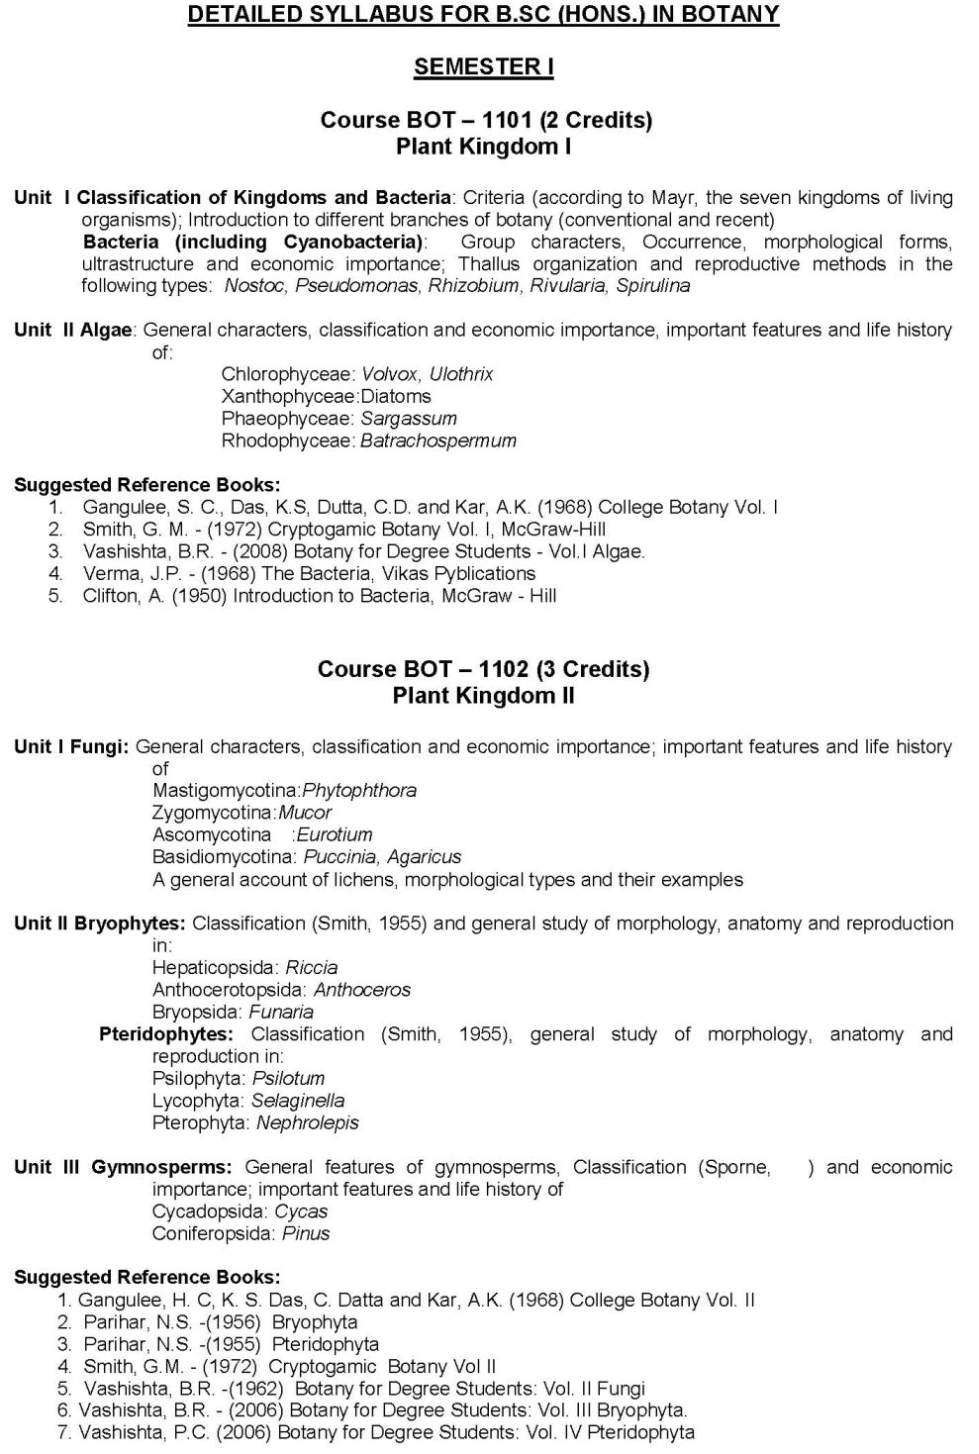 BSC Zoology syllabus MS University - 2018 2019 Student Forum